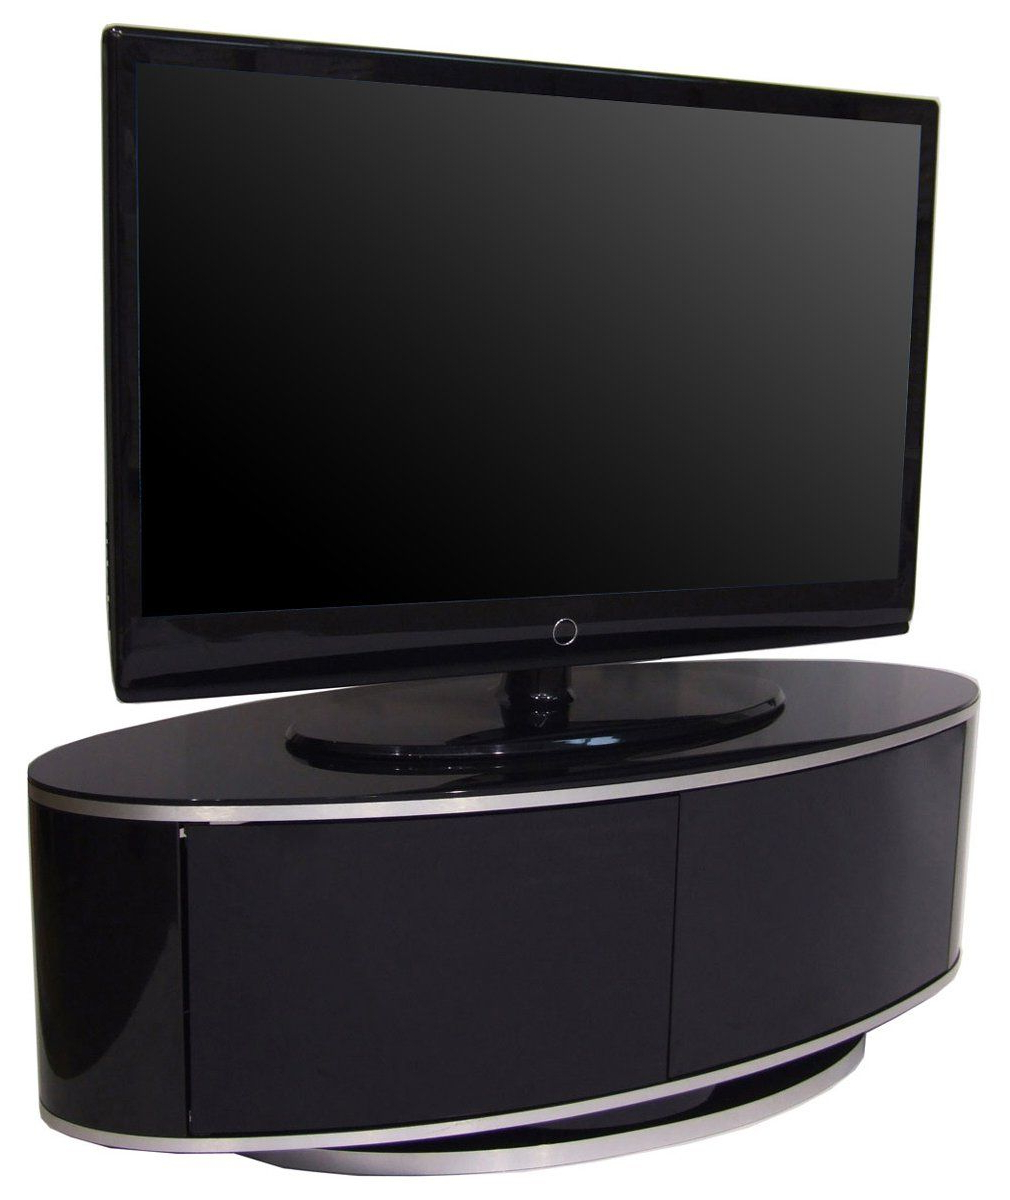 Mda Designs High Gloss Black Oval Tv Stand With Swivel Base And For Recent Swivel Black Glass Tv Stands (View 9 of 20)